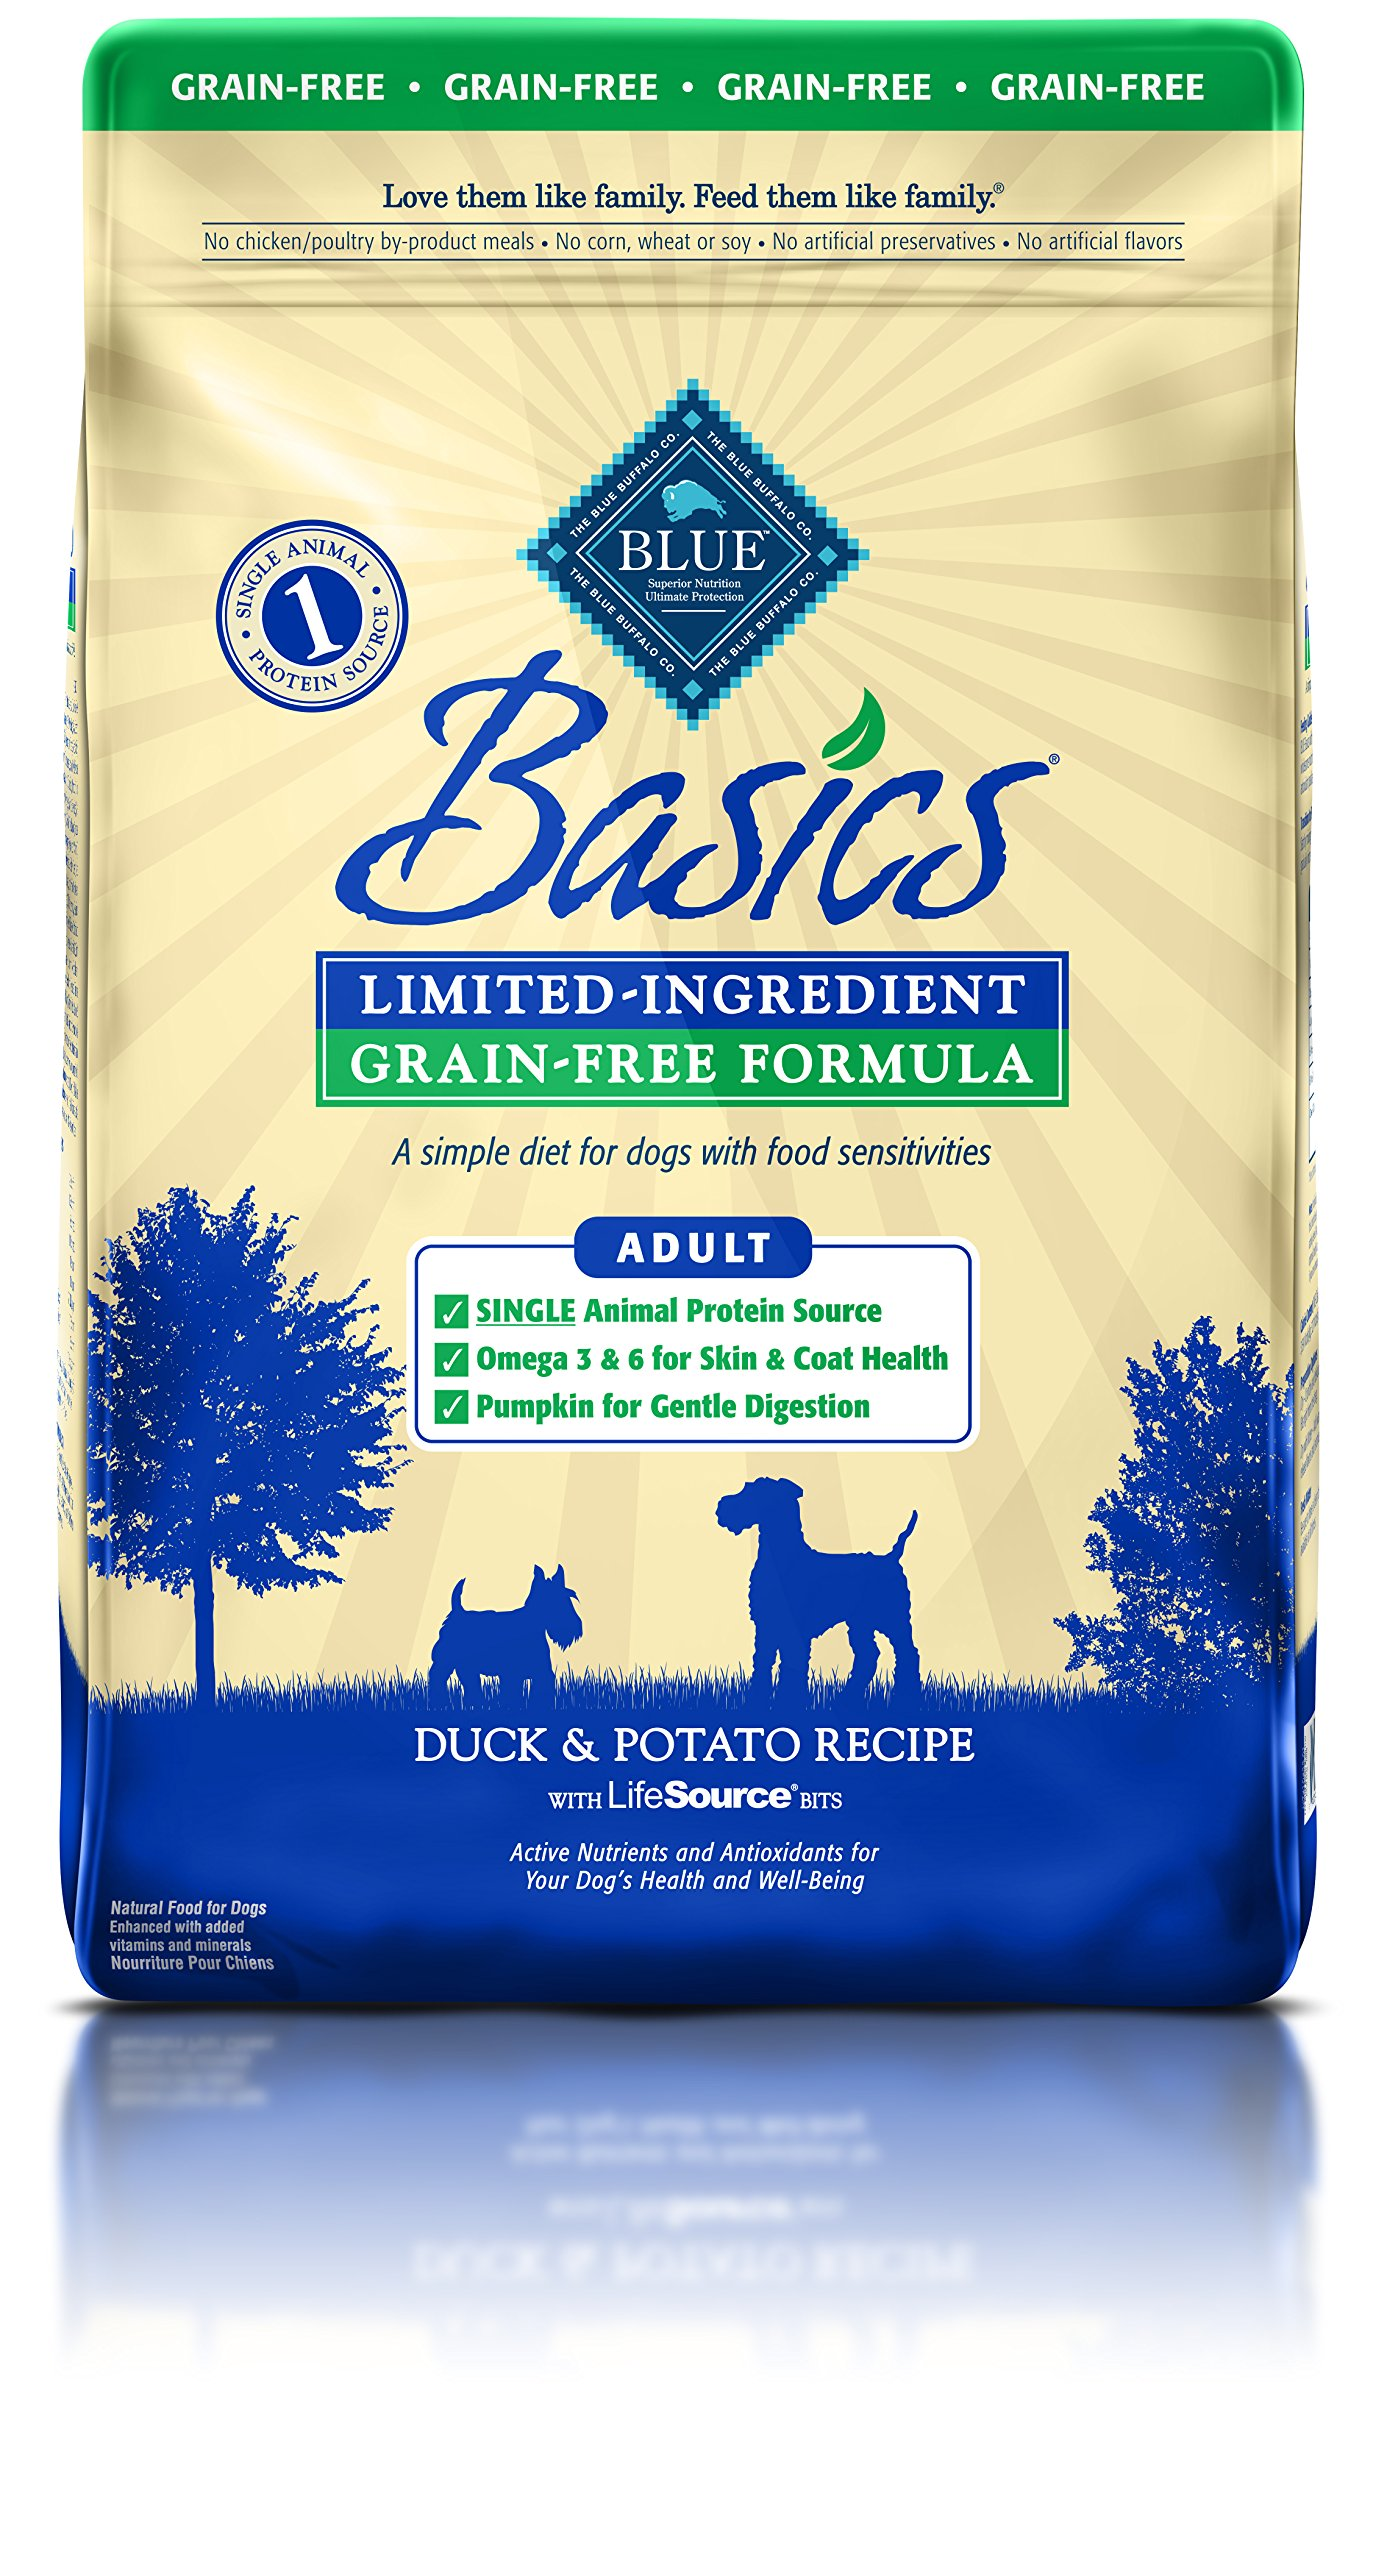 Blue Buffalo Basics Limited-Ingredient Dry Adult Dog Food 22 LB